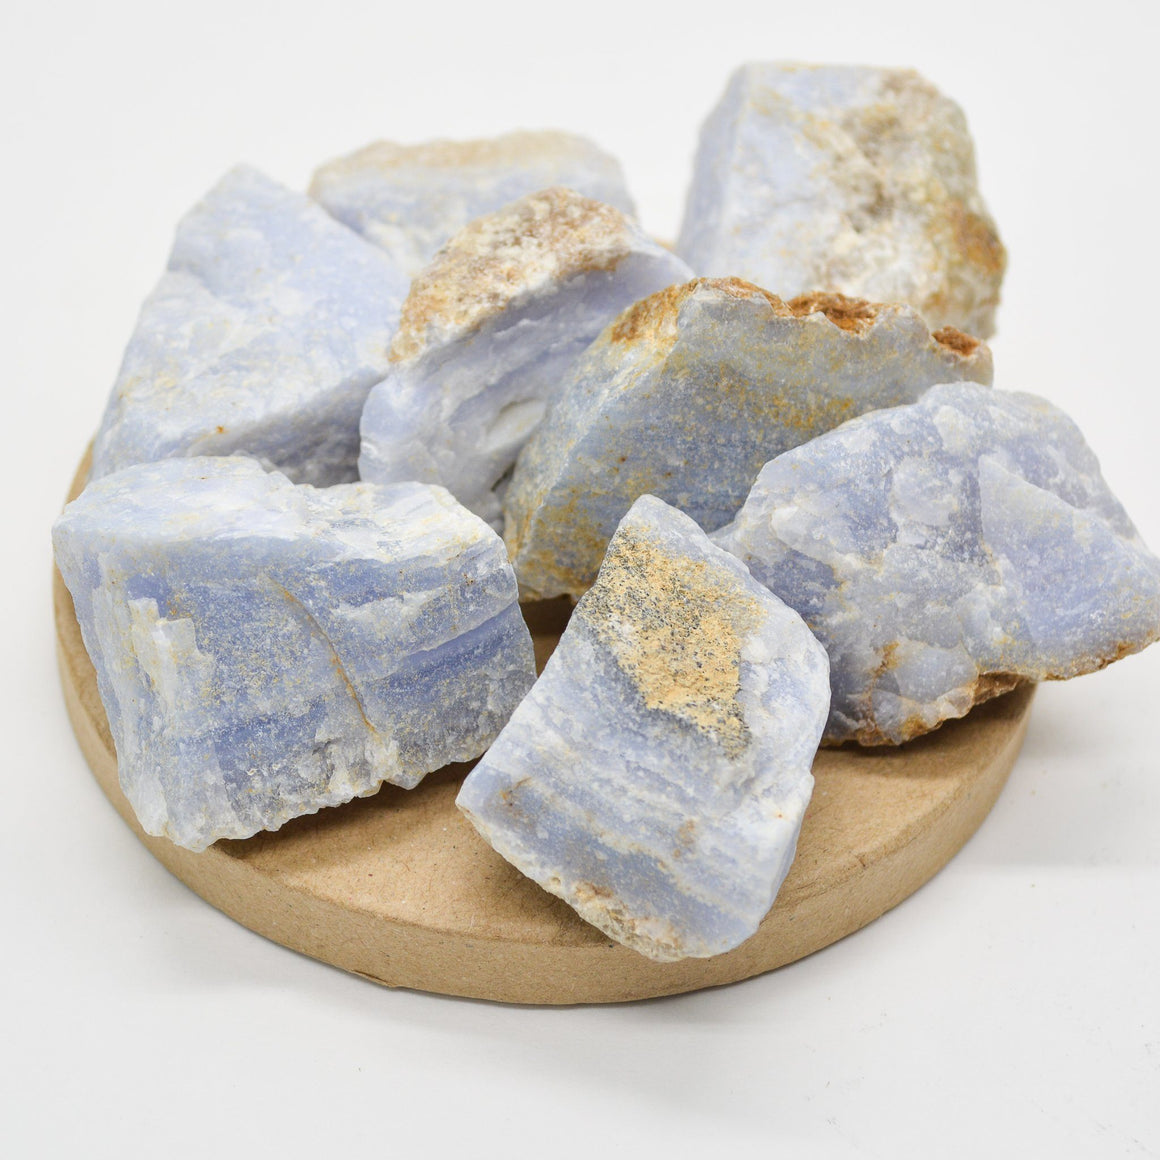 Blue Lace Agate Rough